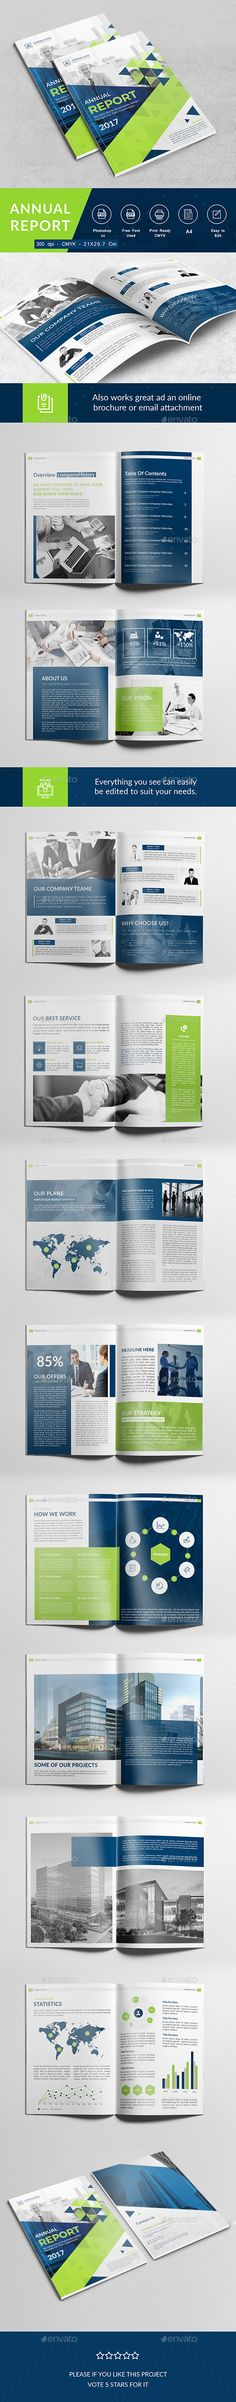 Haweya Modern Annual Report Annual report design, Corporate - professional report template